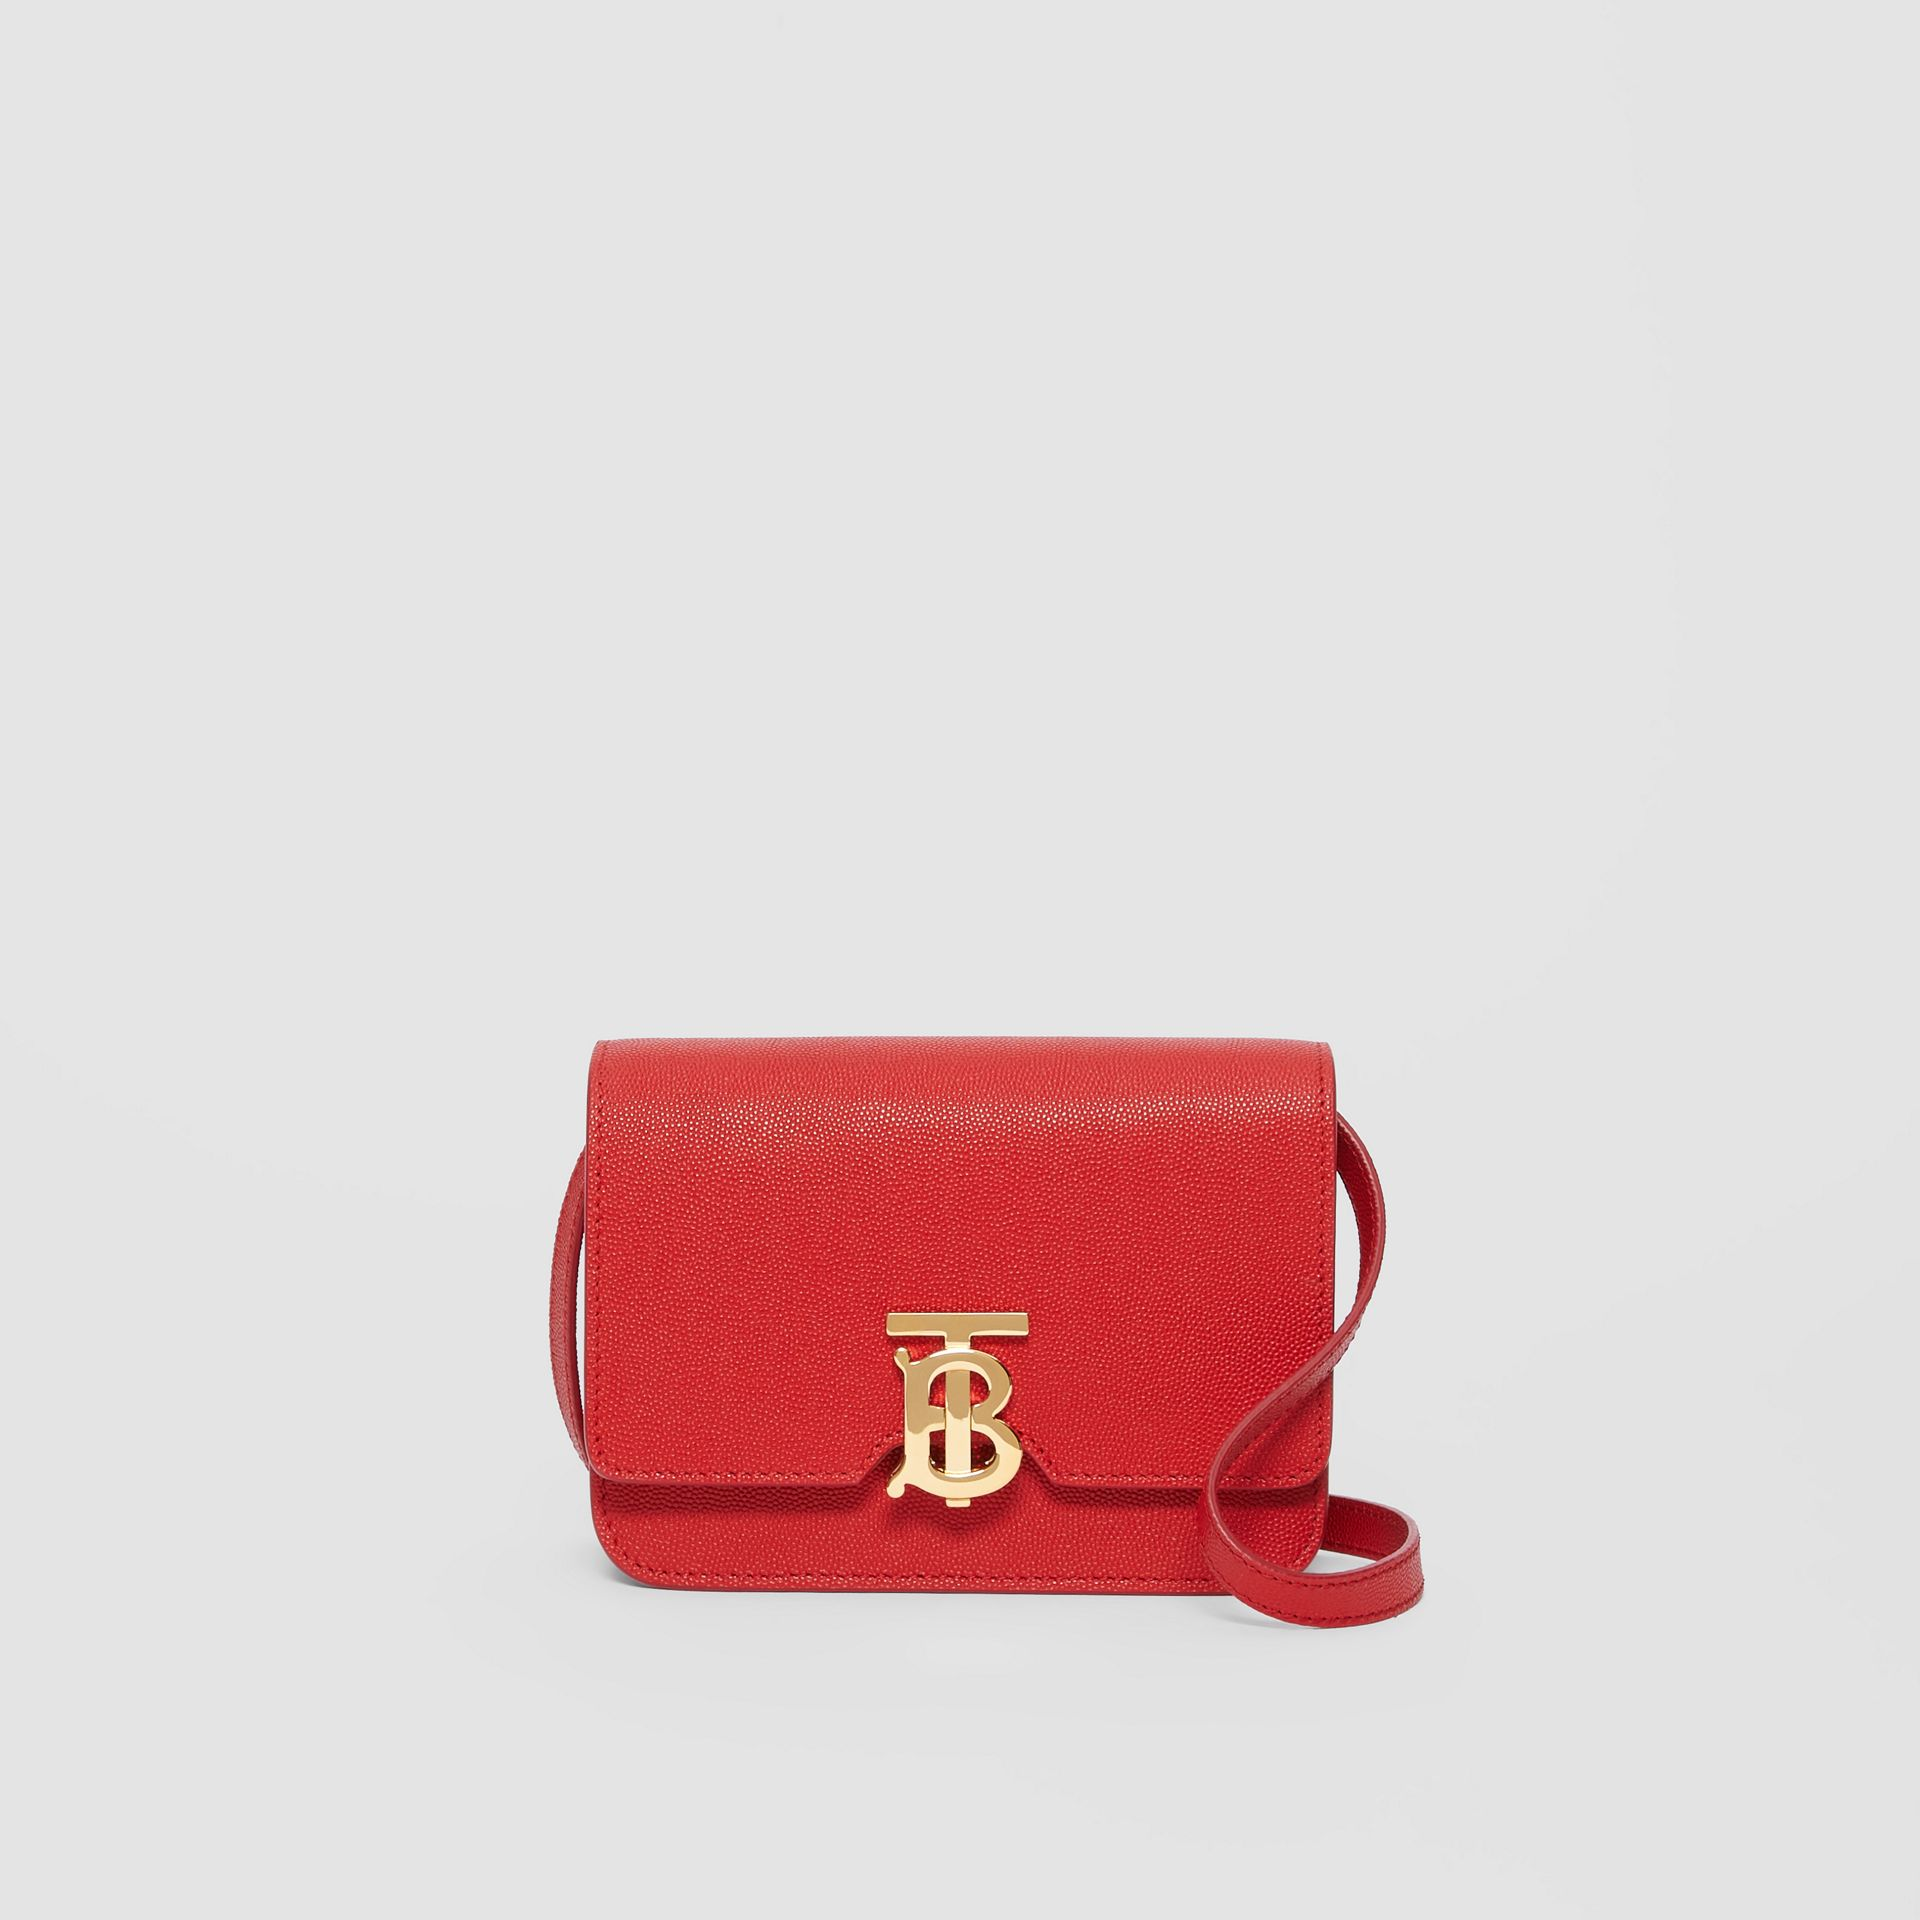 Mini Grainy Leather TB Bag in Bright Red - Women | Burberry Canada - gallery image 0